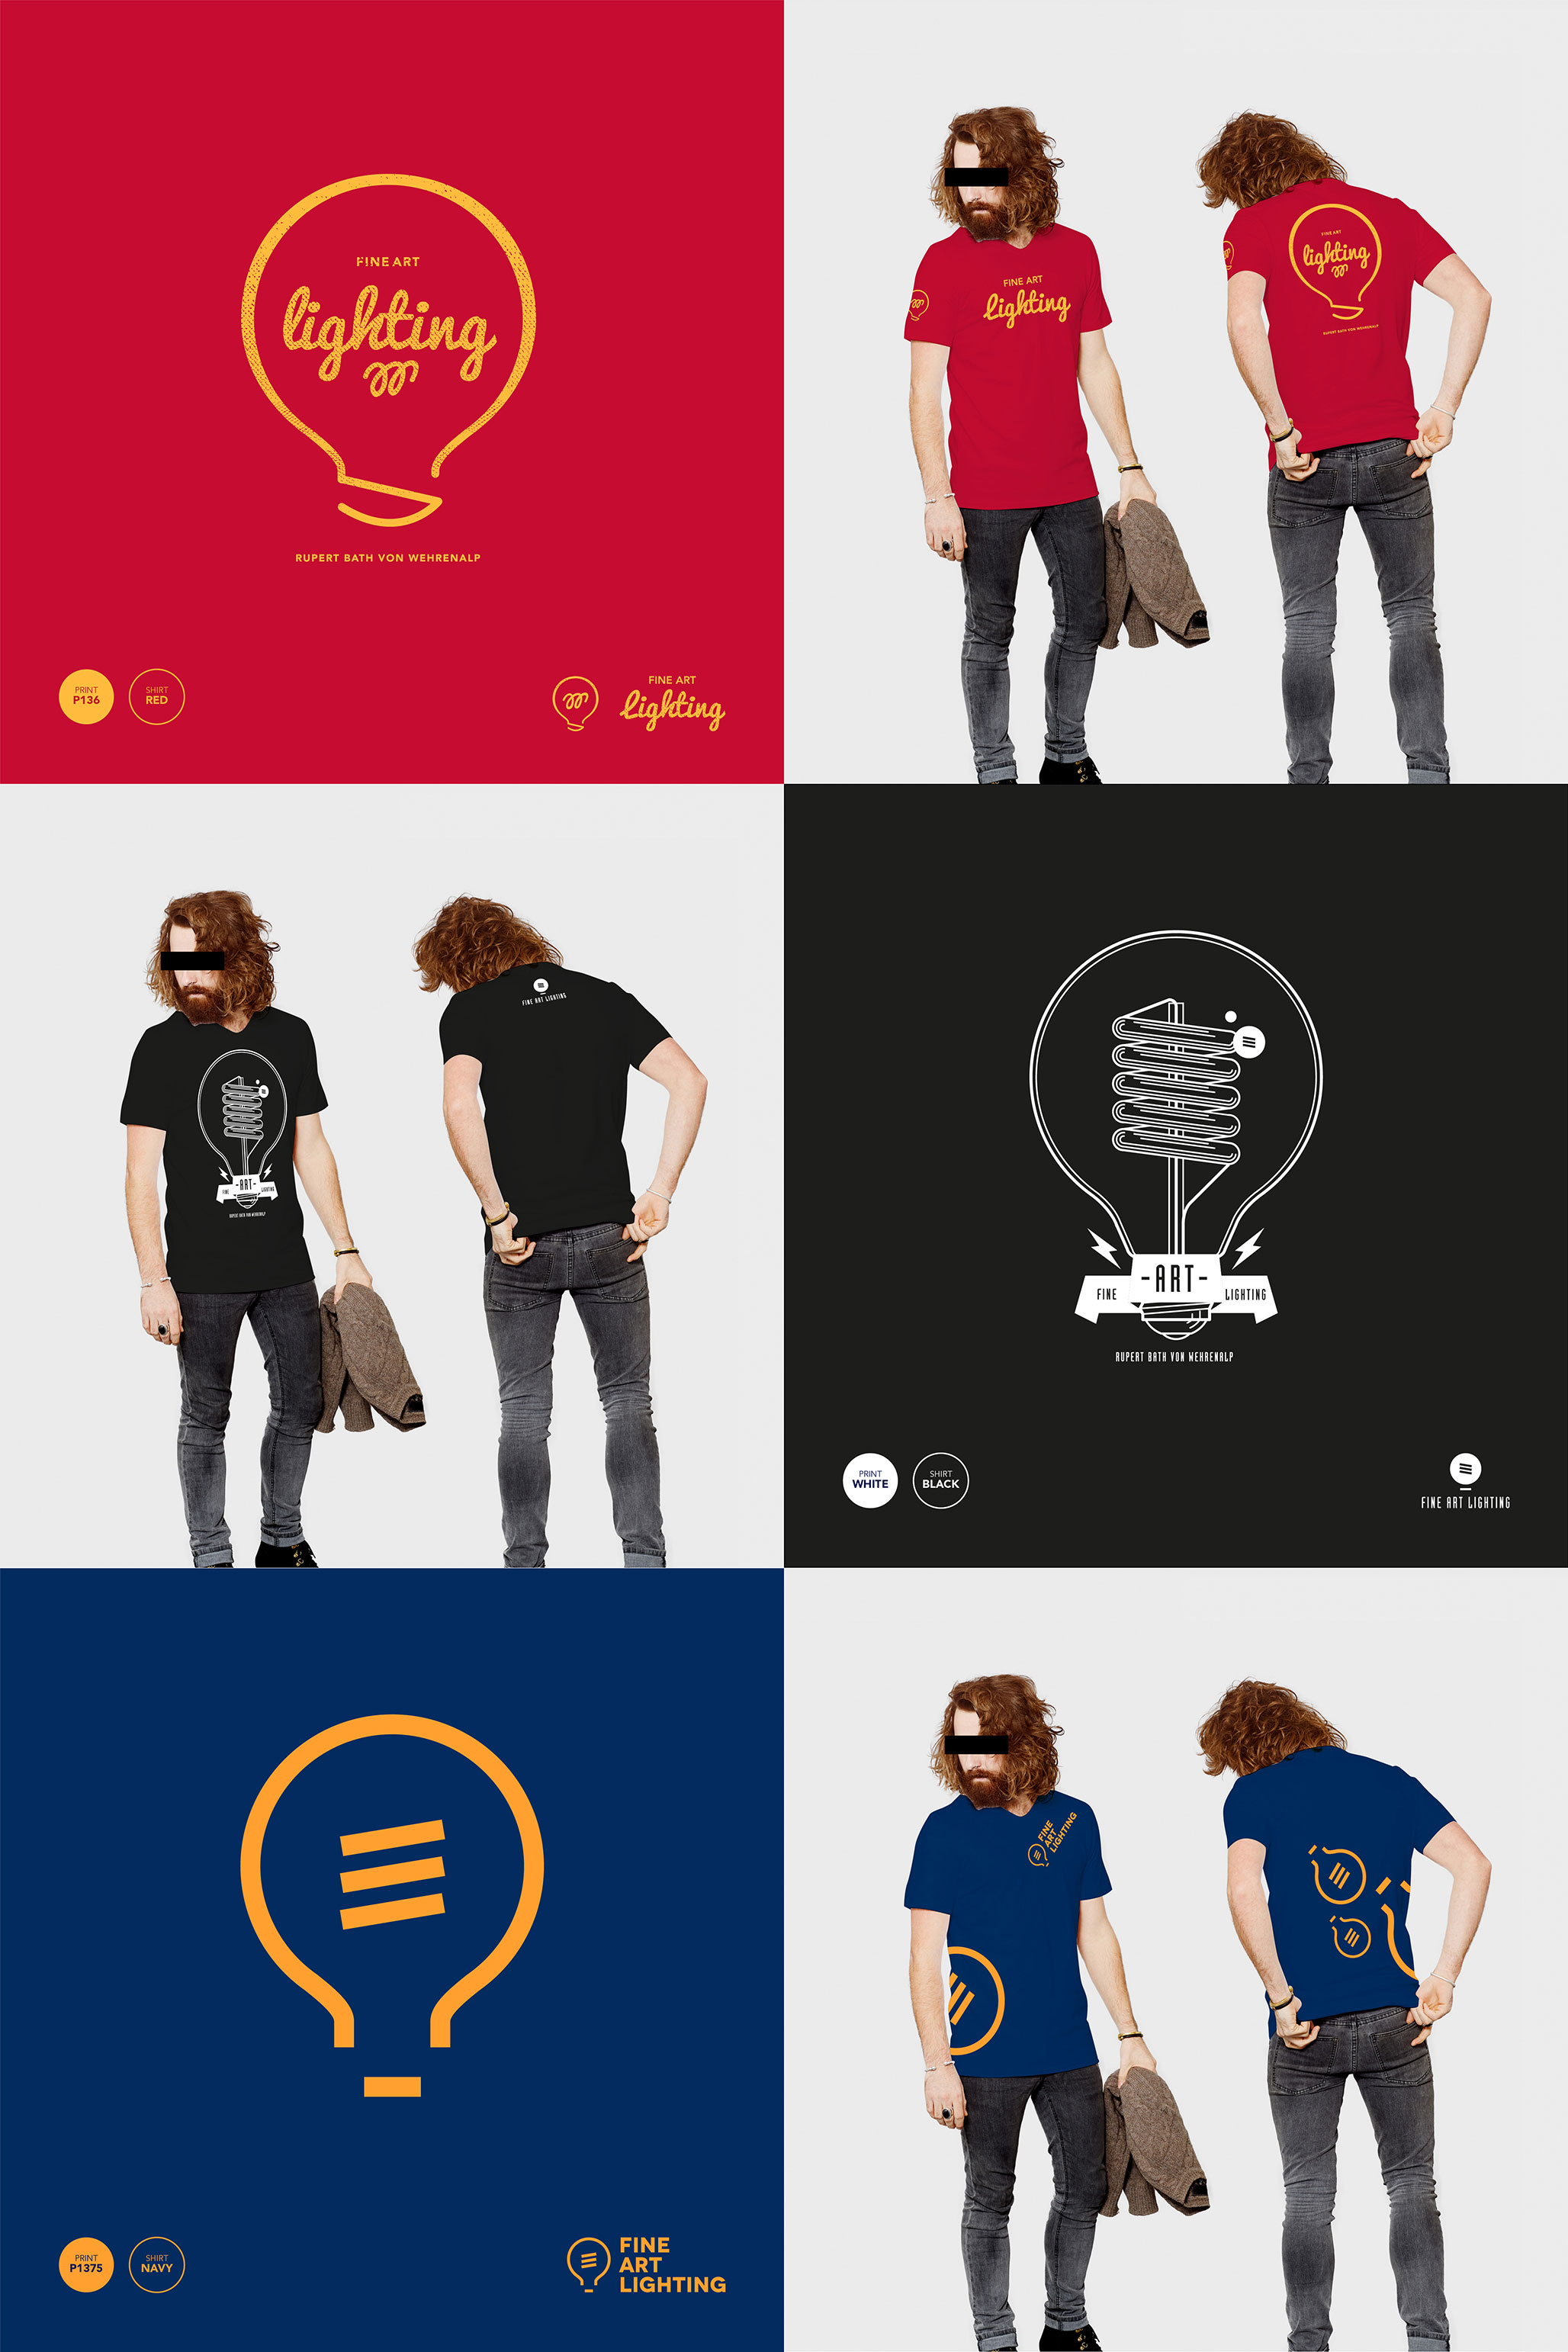 Shirt design concepts - T Shirt Design And Illustration Concepts For Rupert Barth Von Wehrenhelp Of Fine Art Lighting Only Stipulation Was The Use Of A Lightbulb